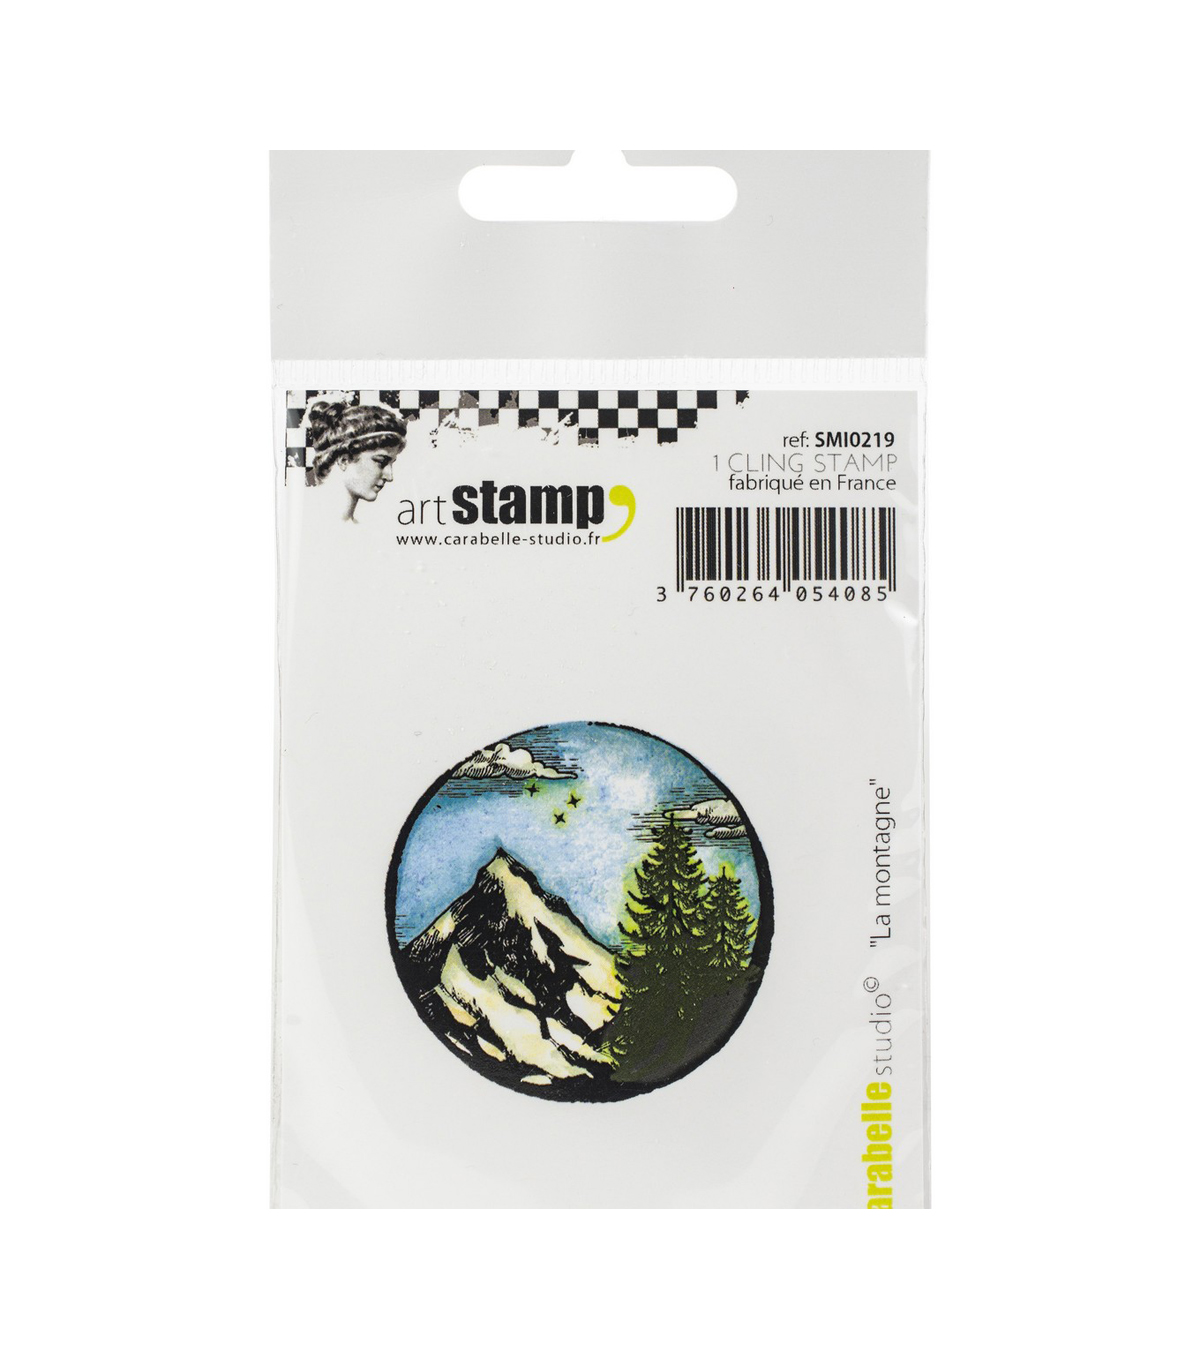 Carabelle Studio Cling Stamp Small-The Mountain